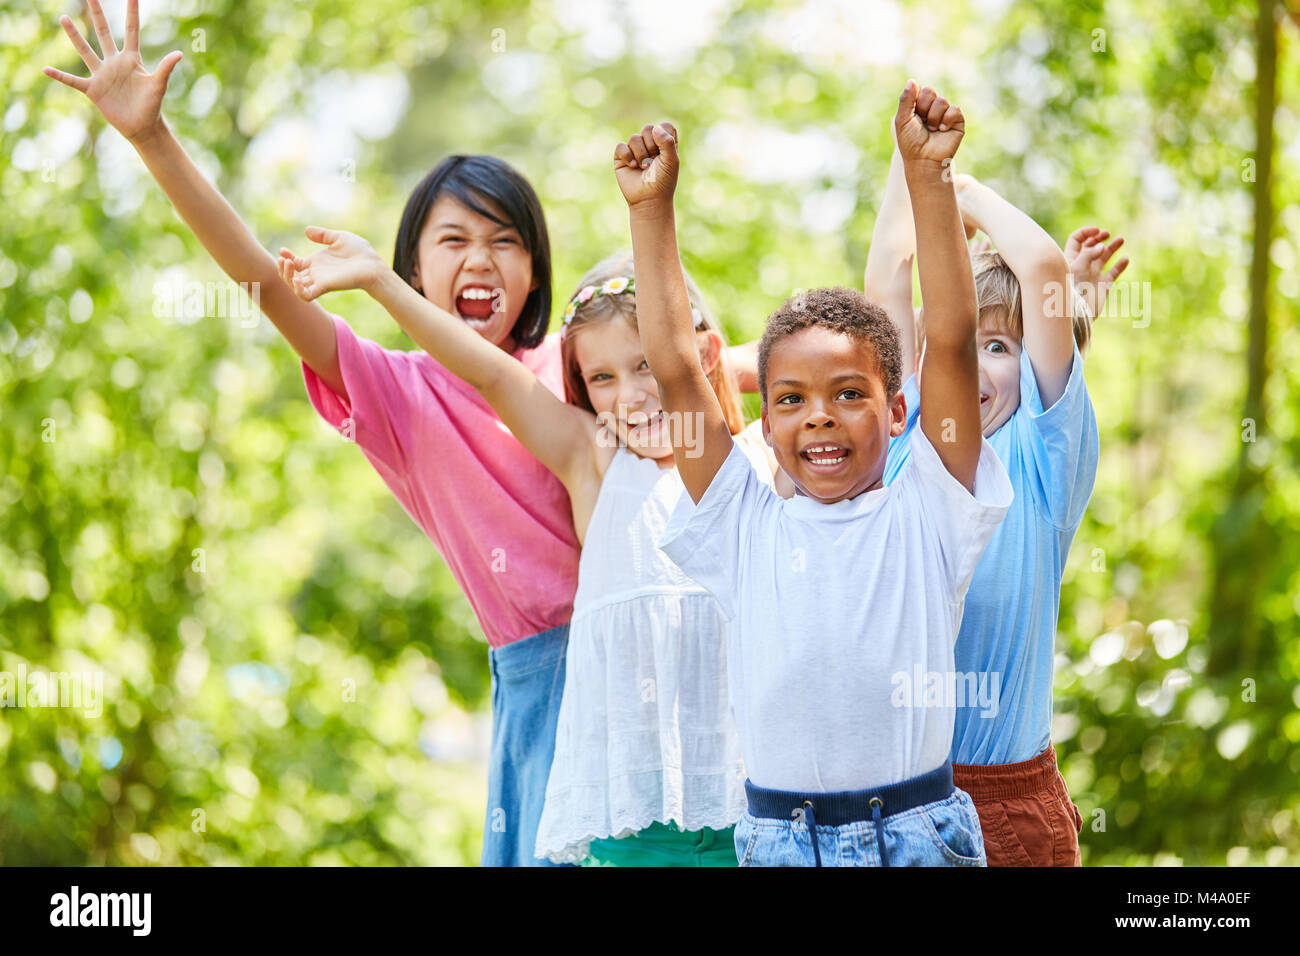 Multicultural group of children enthusiastically cheers on a children's birthday party - Stock Image